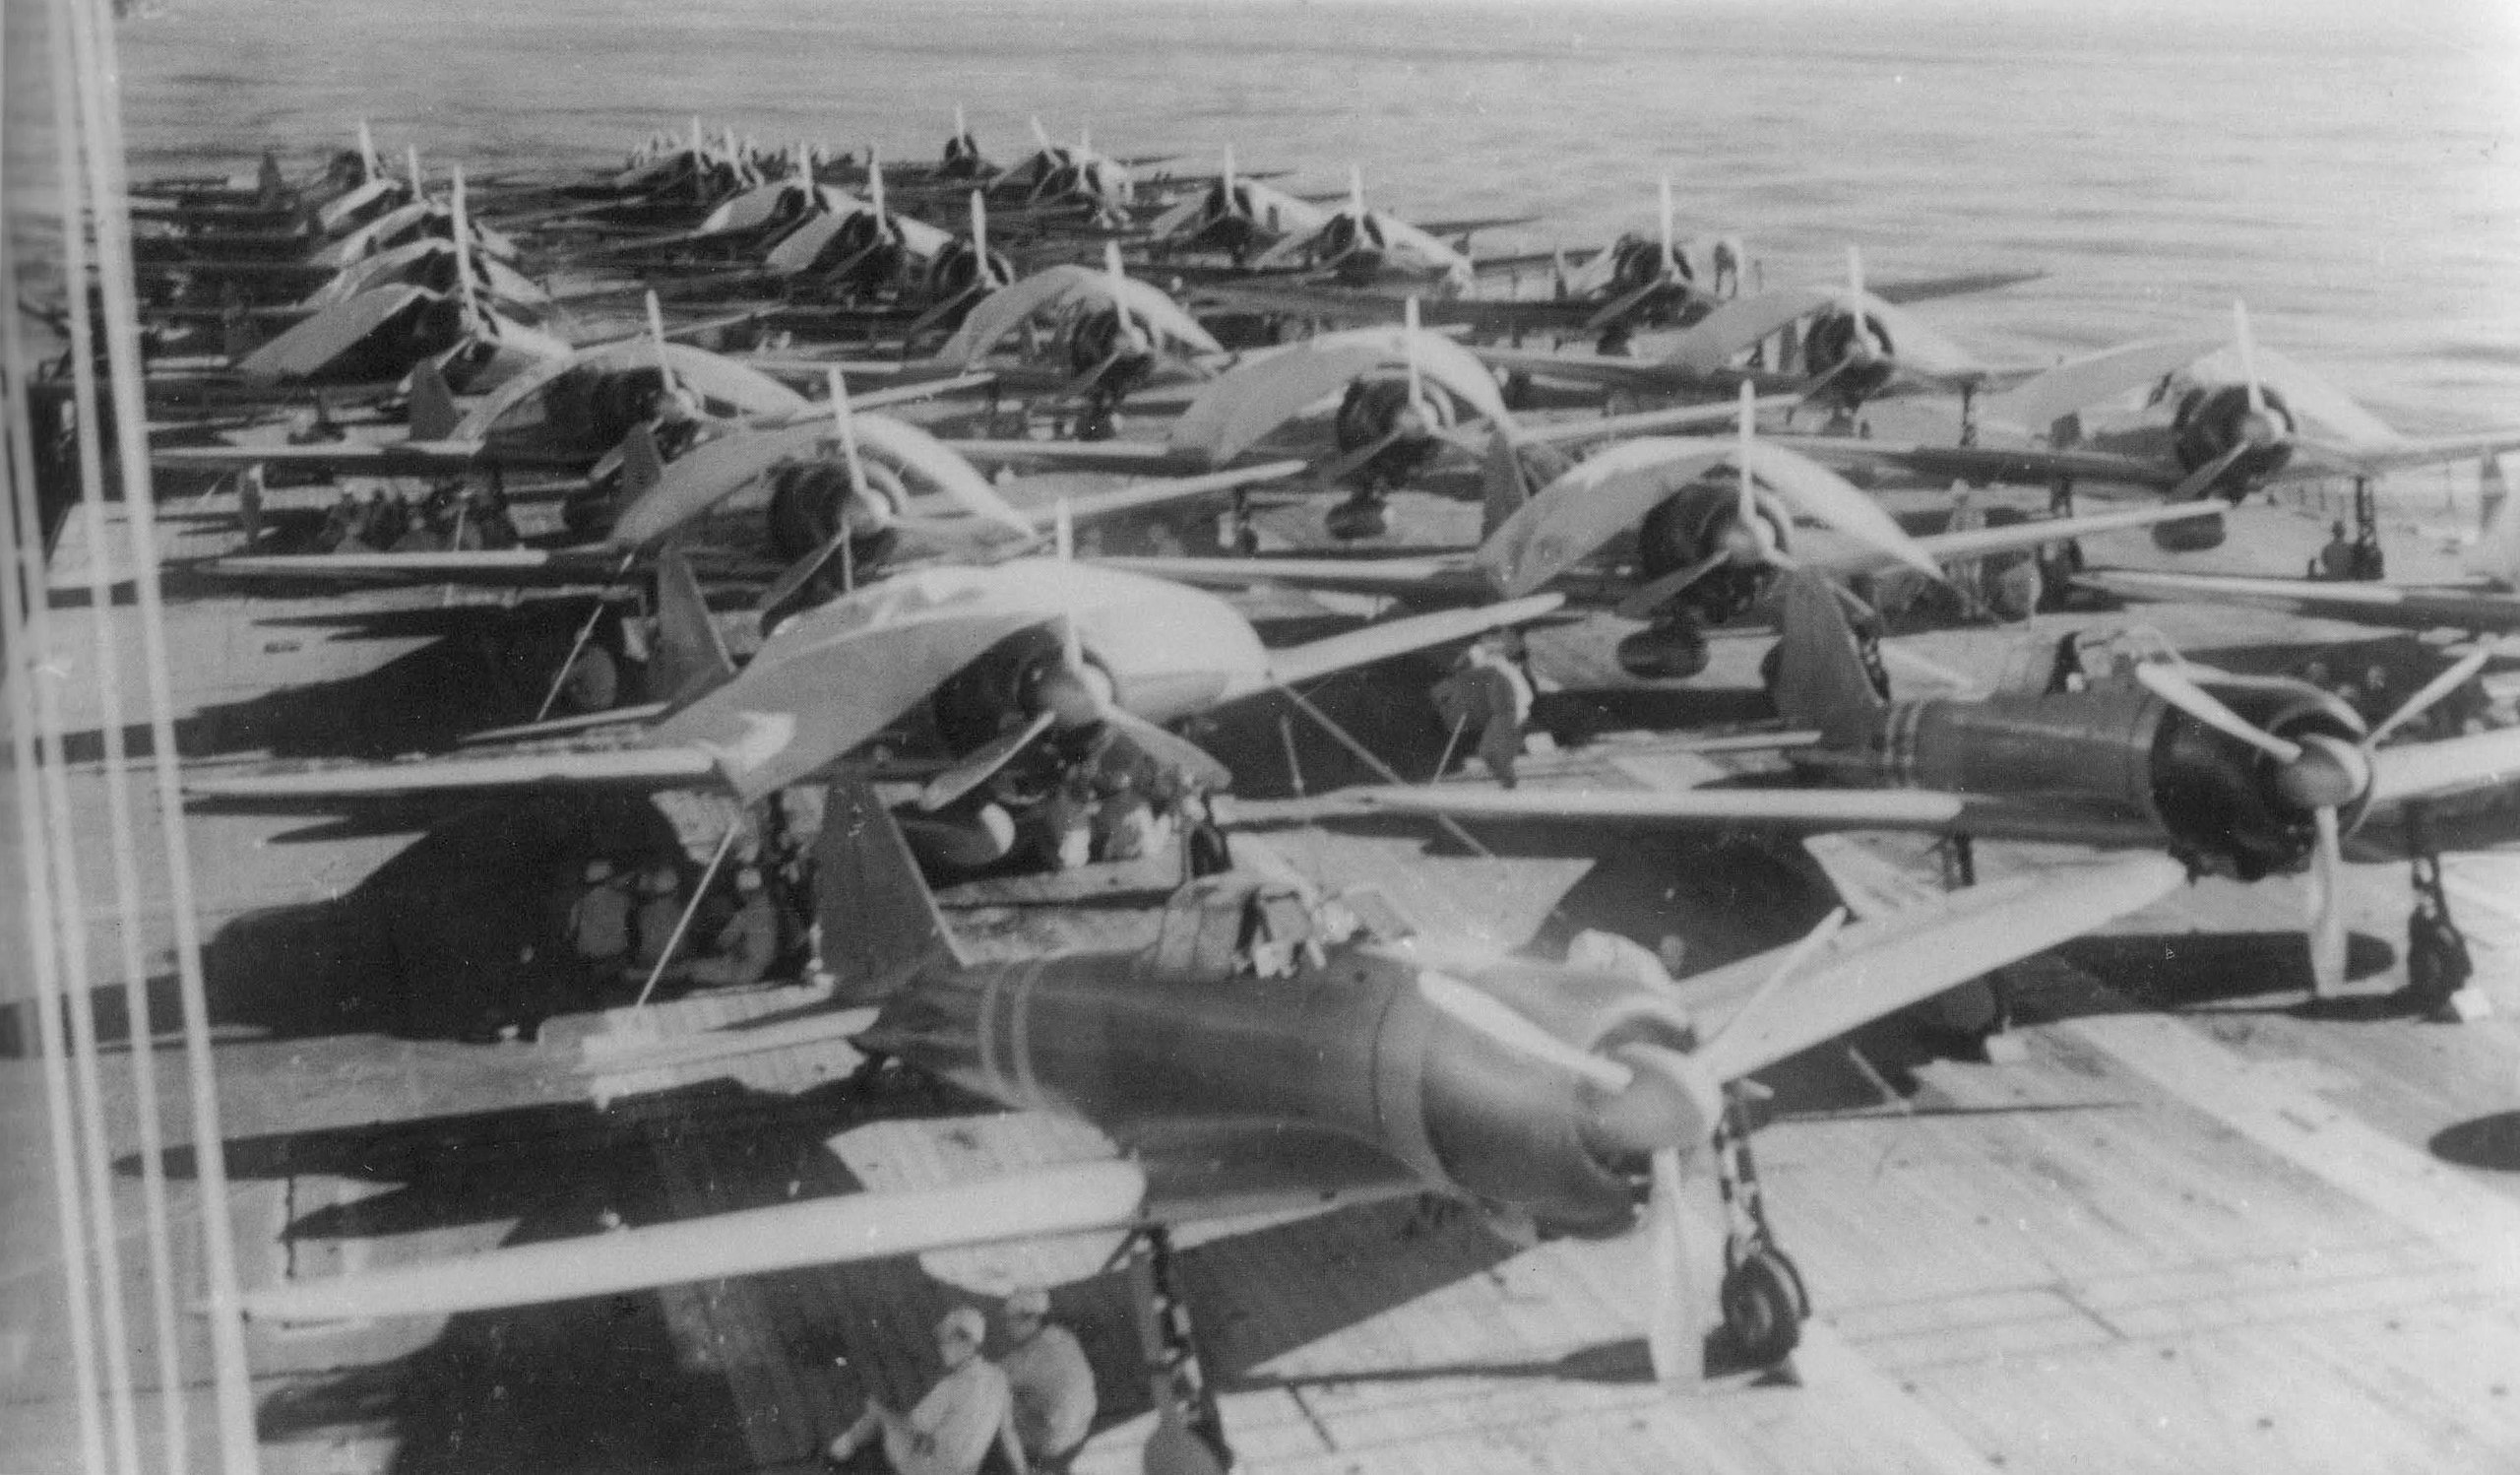 Crewmen of the Japanese aircraft carrieriZuikaku service aircraft in preparation for the Battle of the Coral Sea.